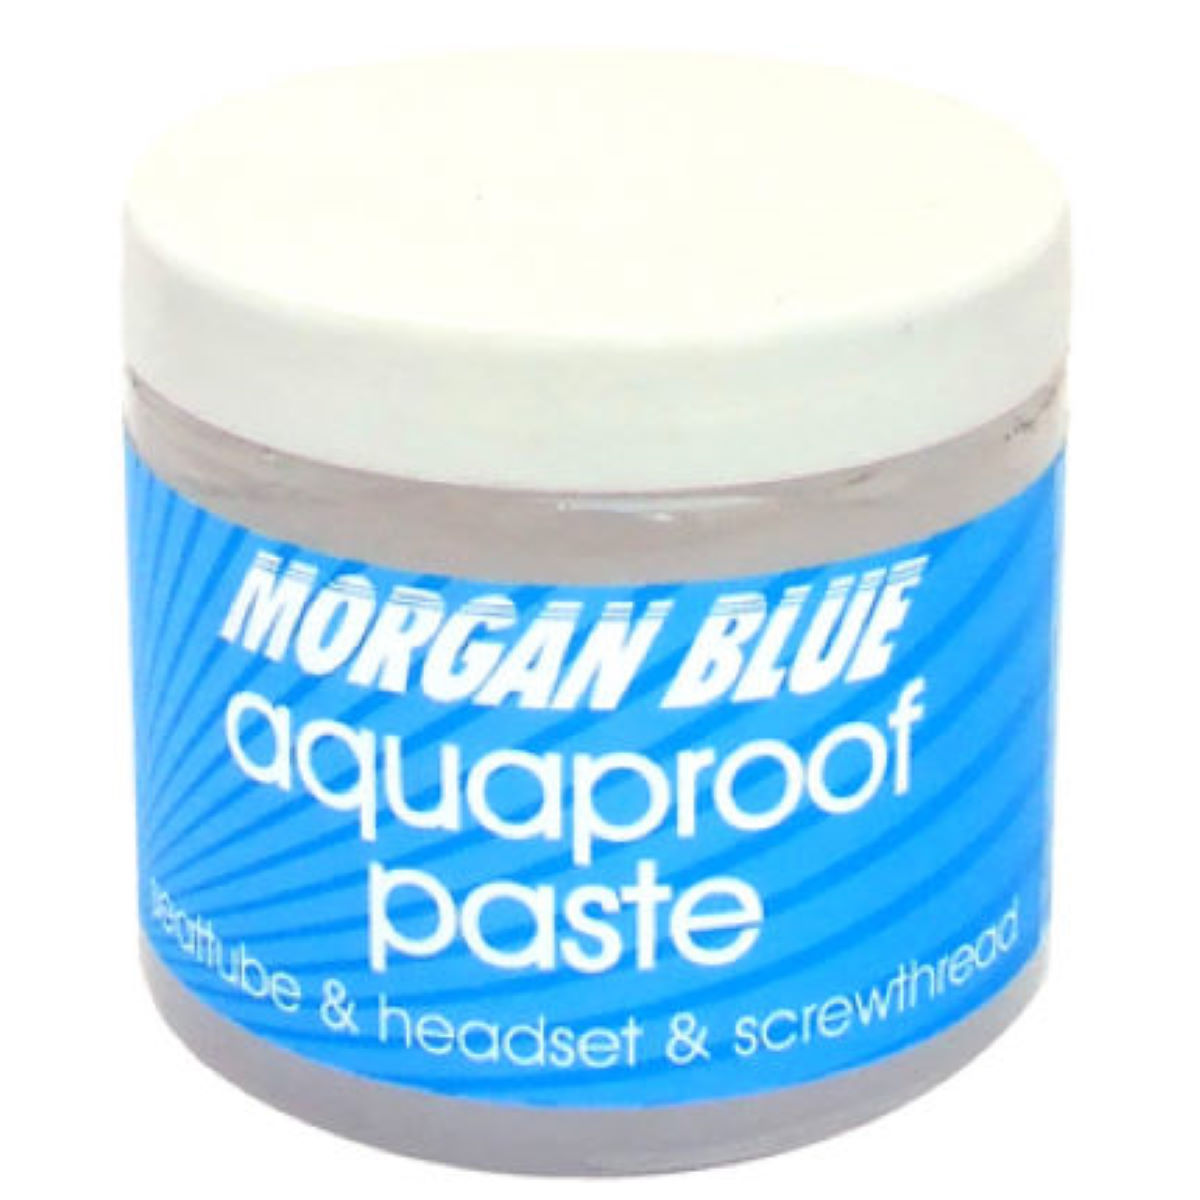 Grasa impermeable Morgan Blue Aquaproof Paste (200 ml) - Lubricantes